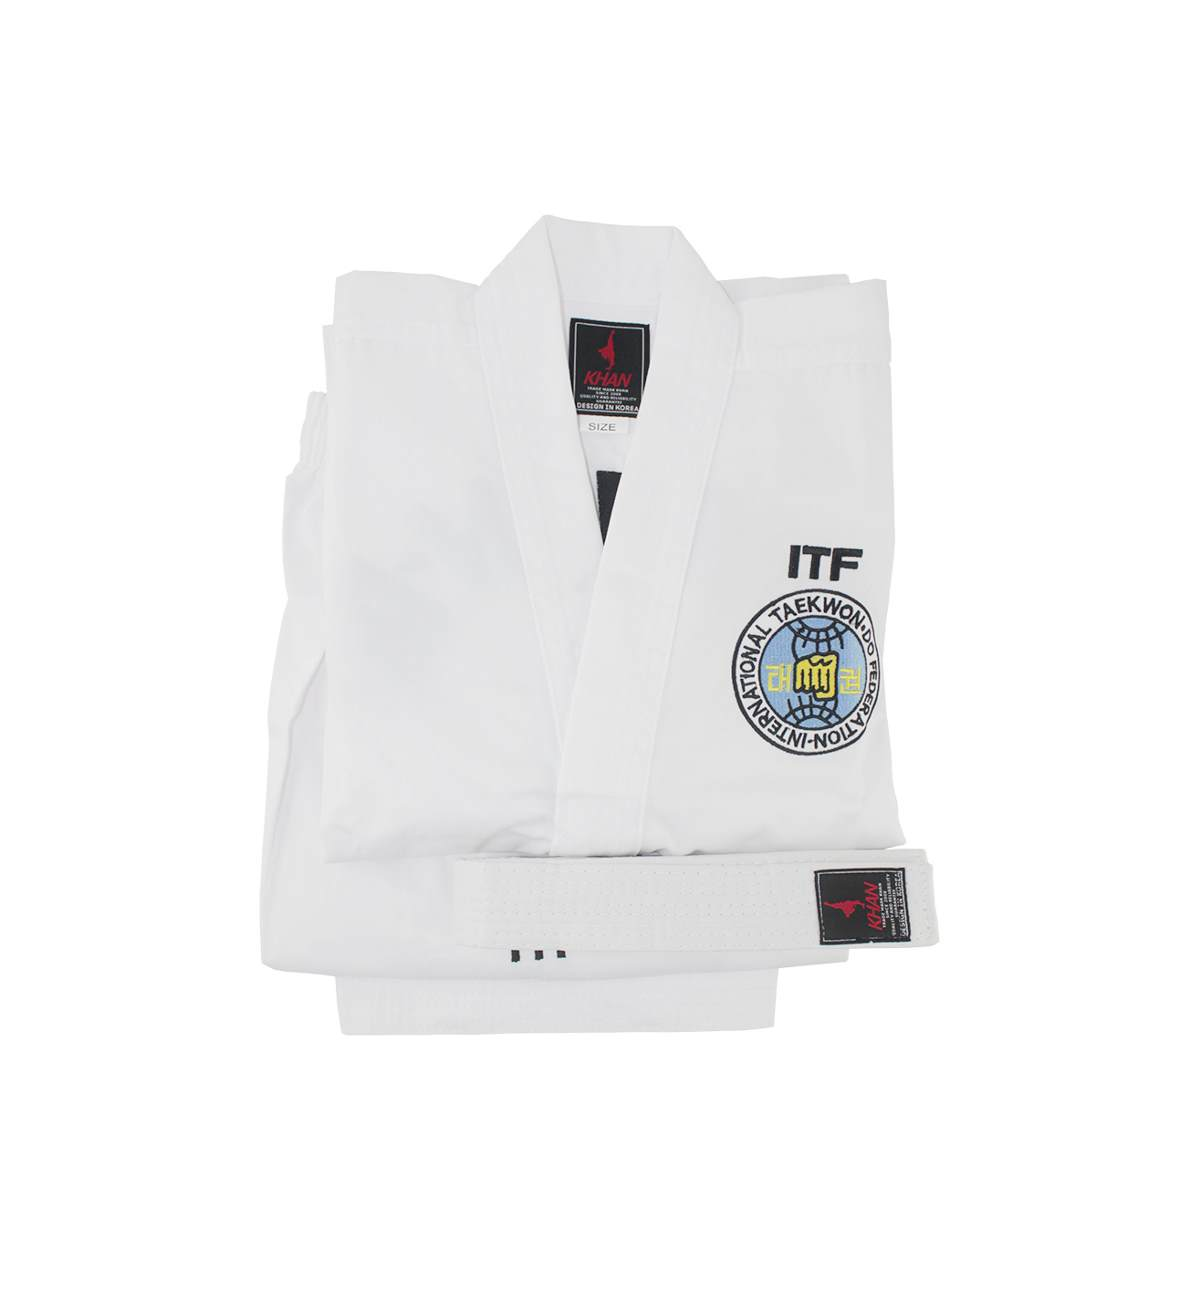 Кимоно таэквондо ИТФ WHITE BELT CLUB KHAN